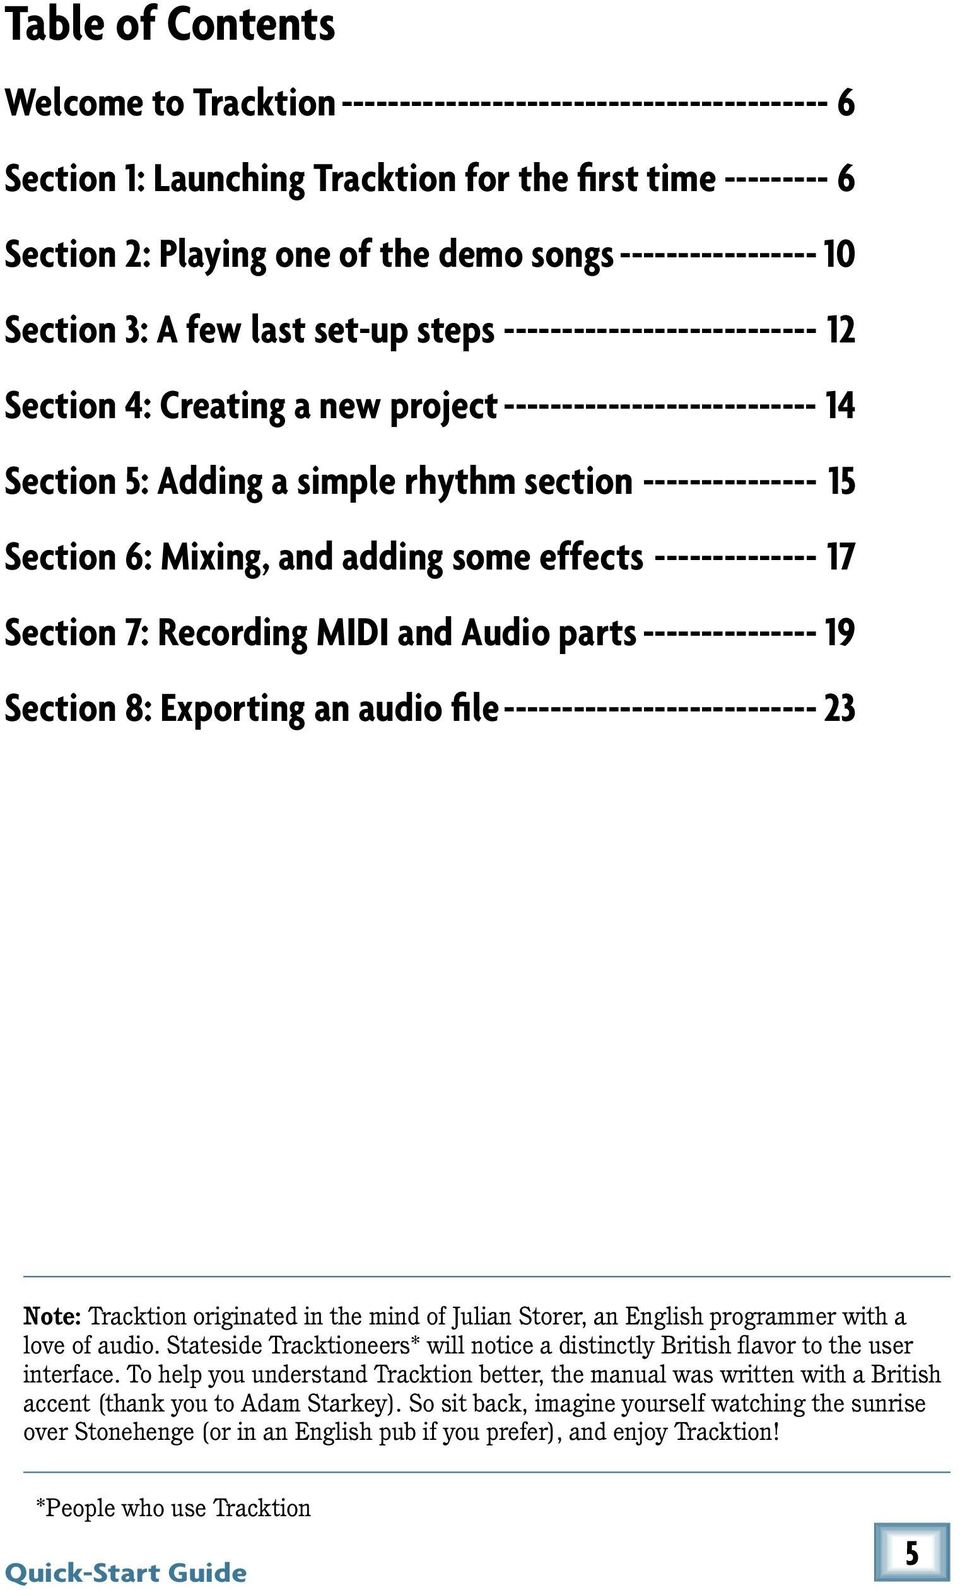 TRACKTION 3 MUSIC PRODUCTION SOFTWARE - PDF